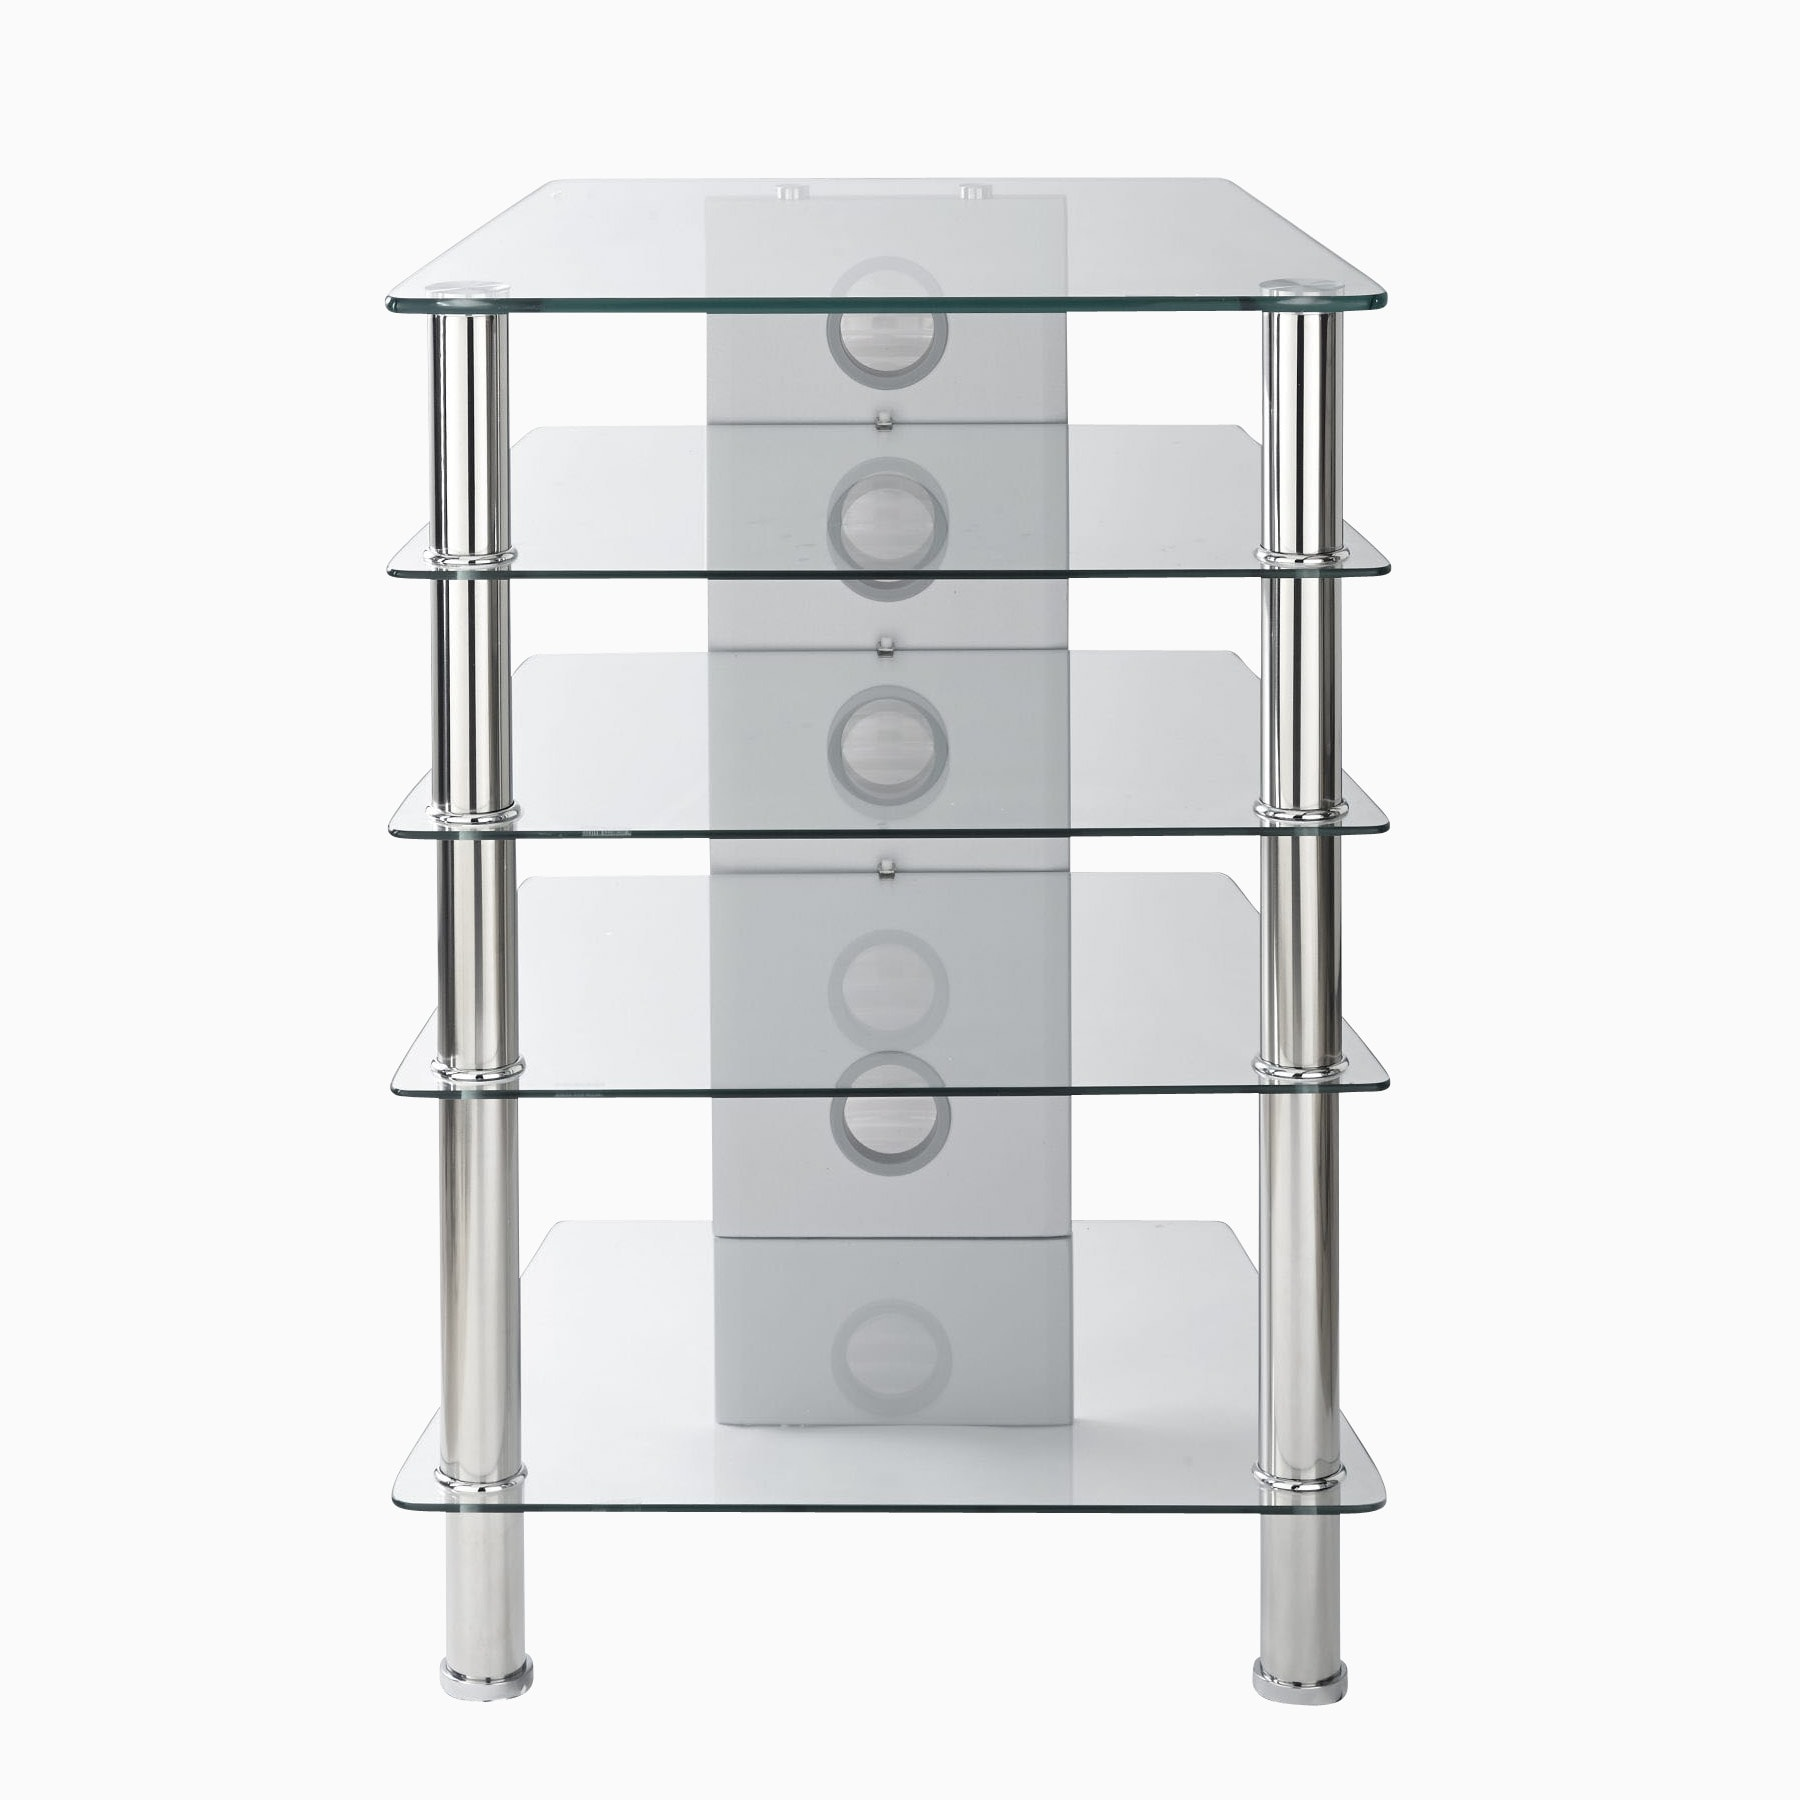 Hifi Rack Selbstbau Glas Mmt Hfclr610 Hi Fi Stand With Deep Clear Glass Shelves